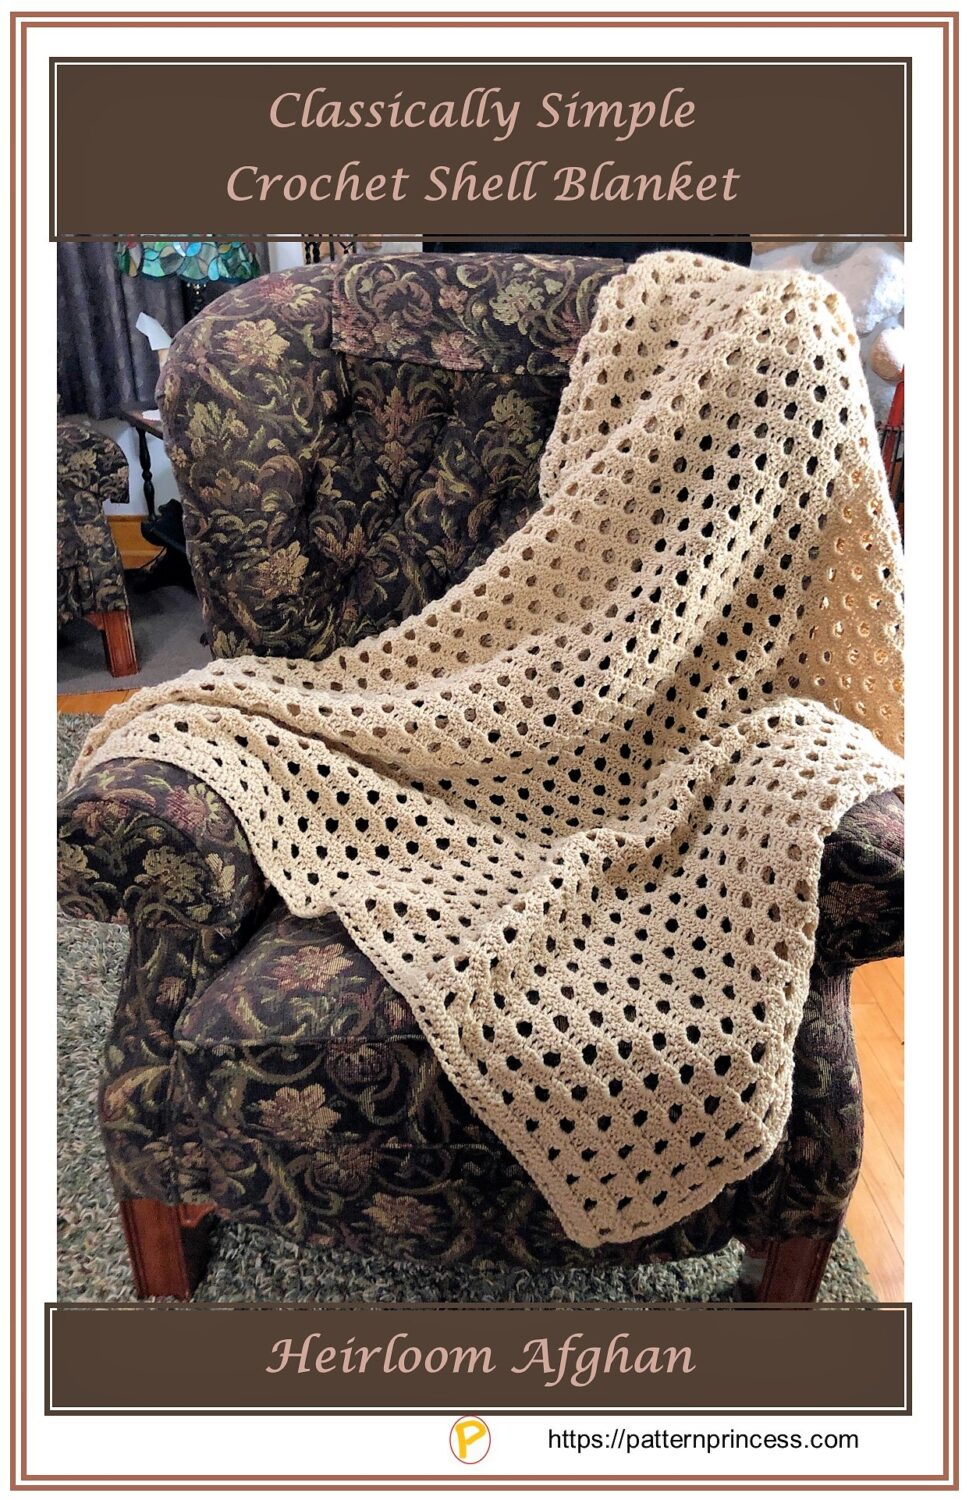 Classically Simple Crochet Shell Blanket